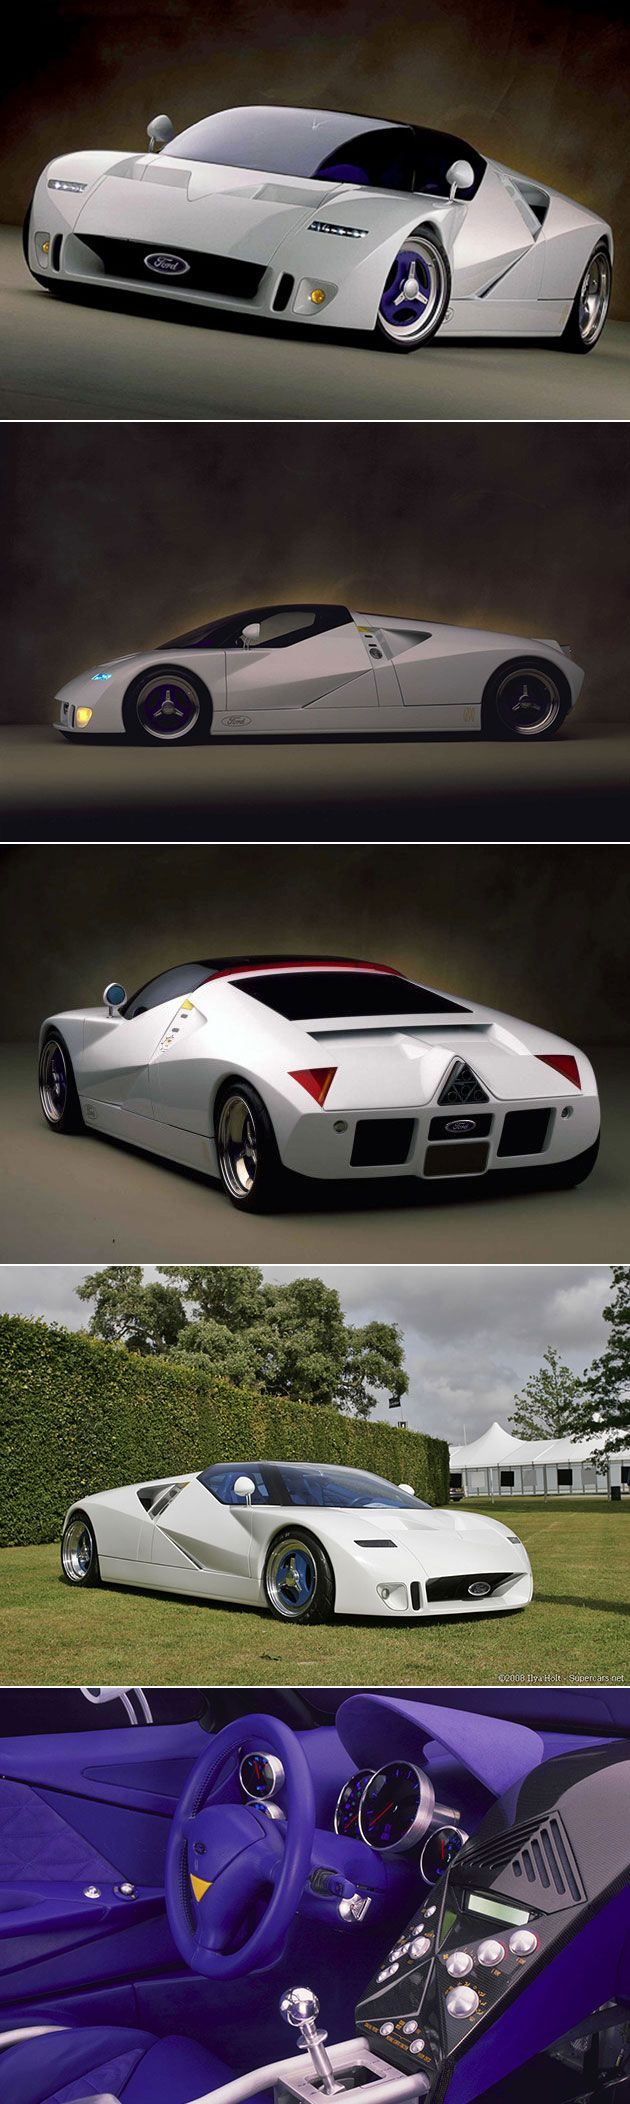 Ford gt90 replica diy ford gt90 replica - Ford Gt90 Is The Mightiest Supercar You Ve Probably Never Heard About Has Quad